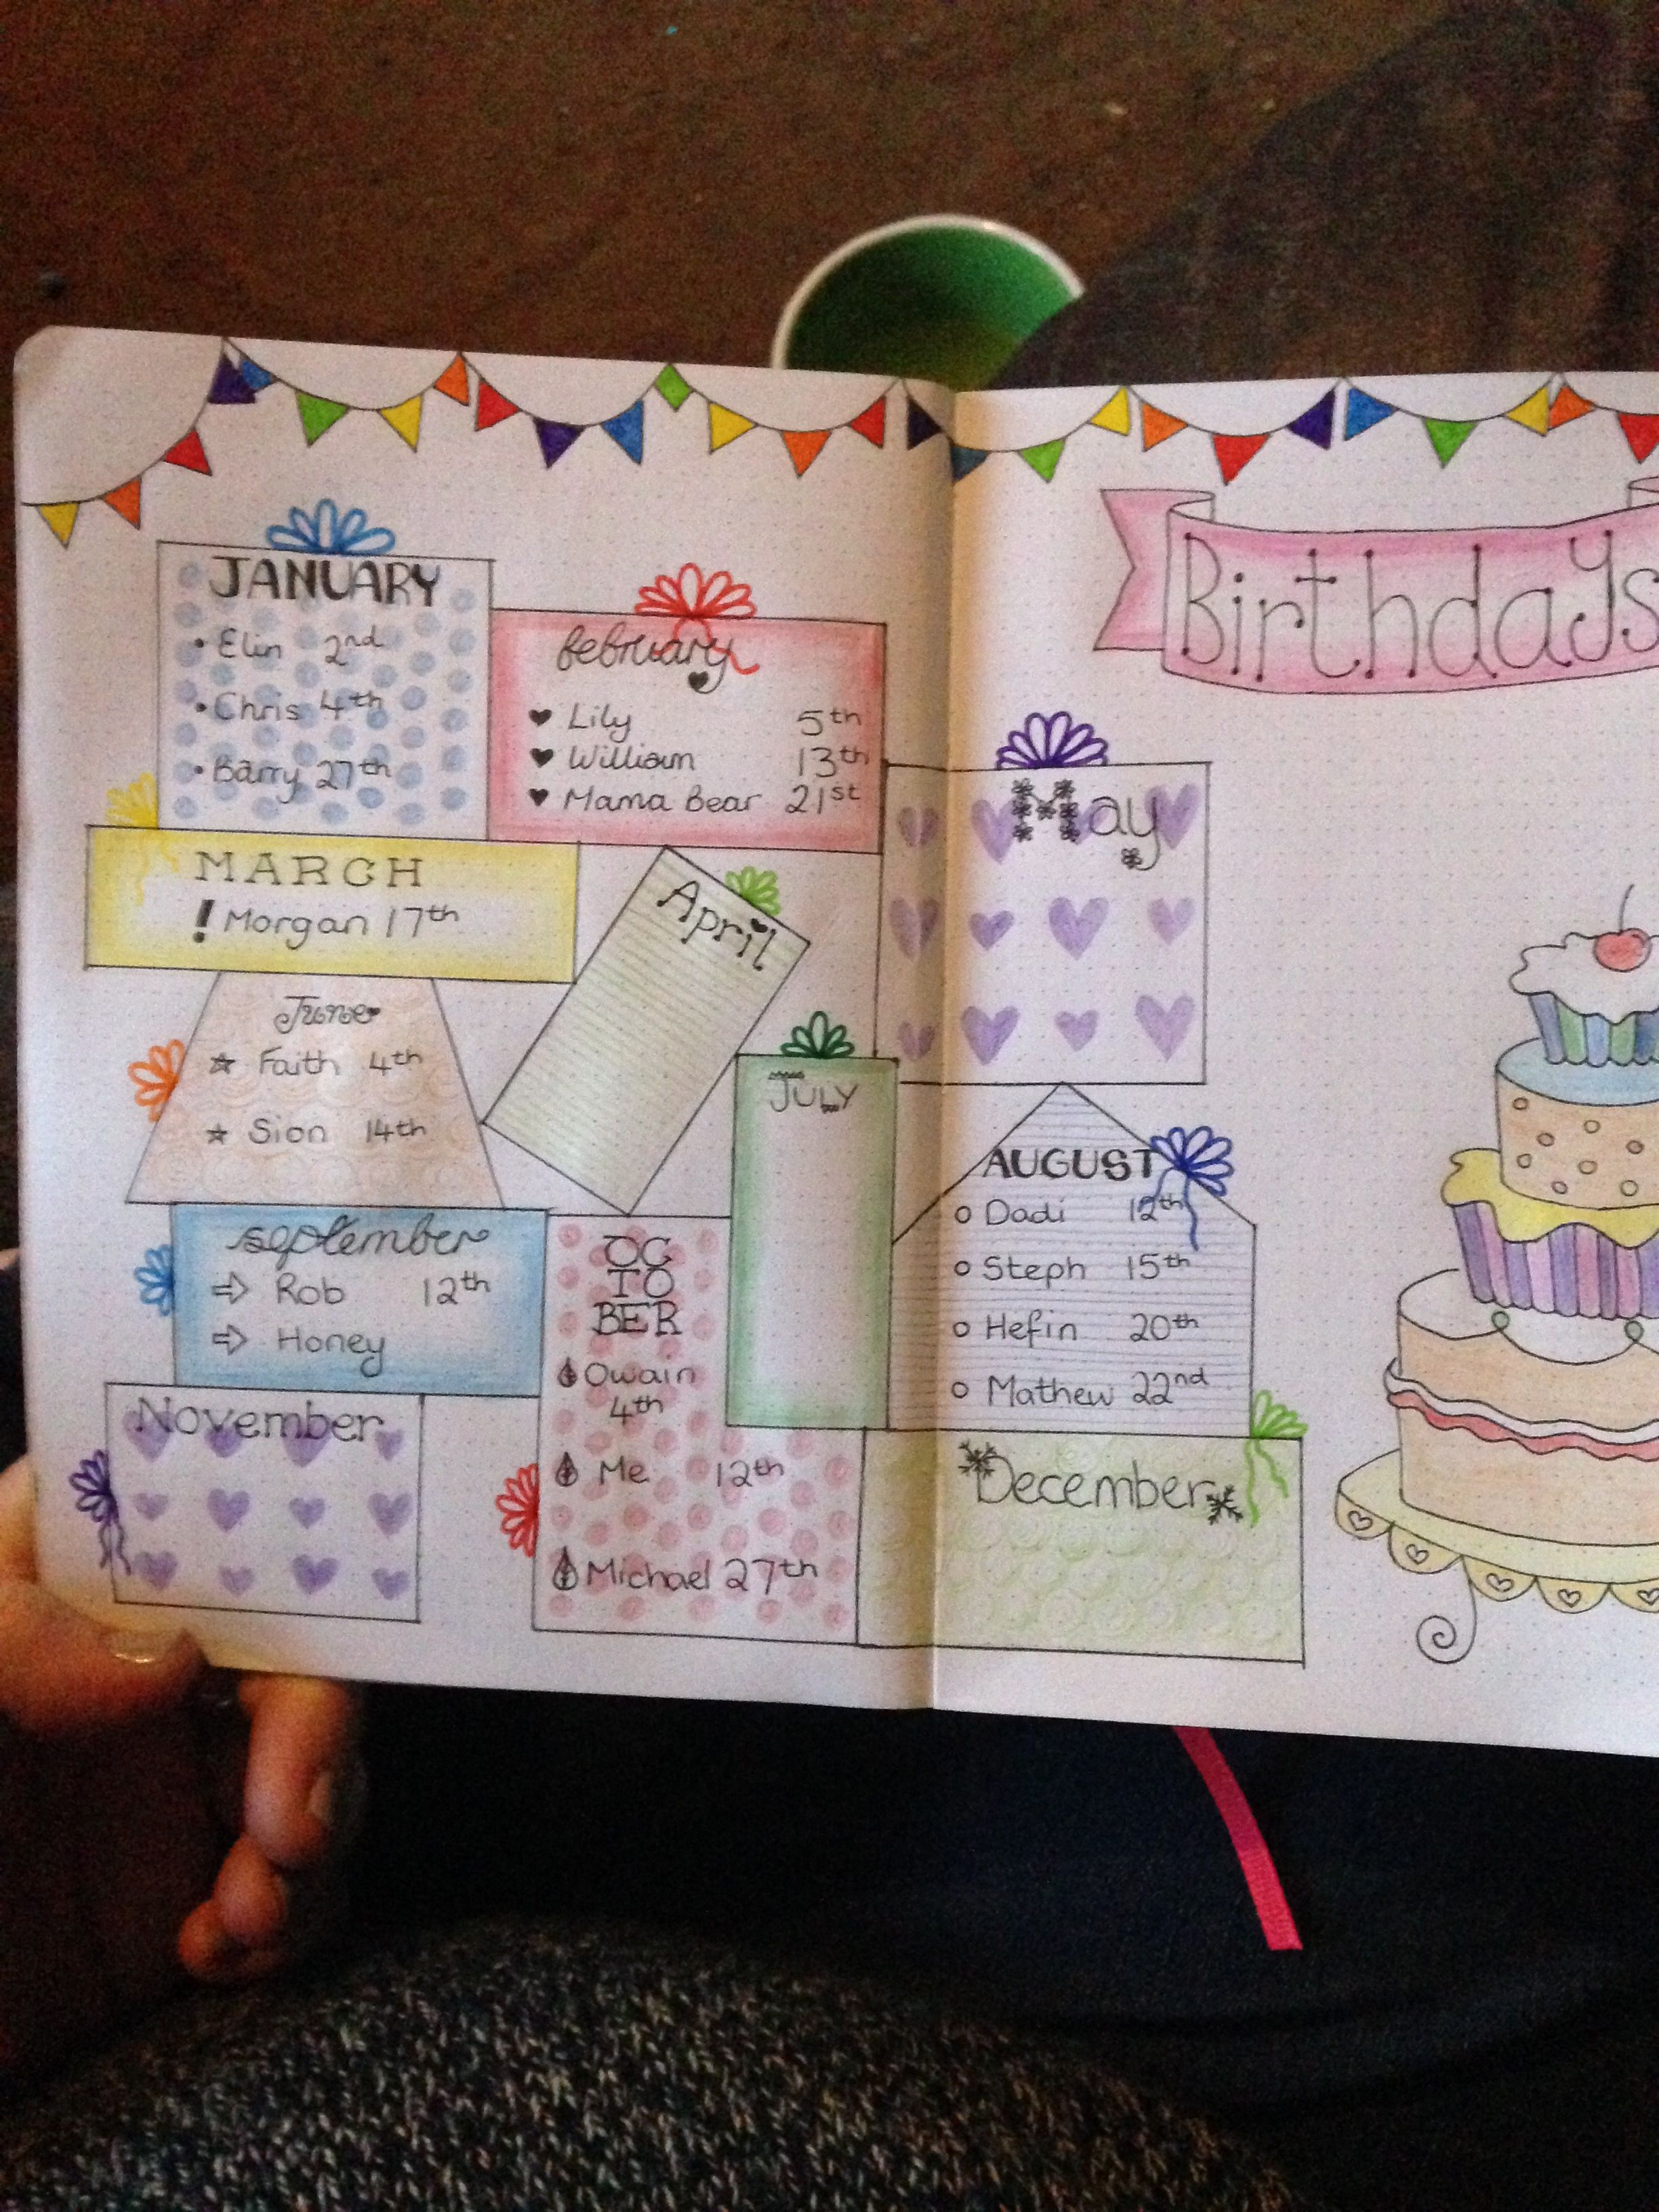 my birthday reminder pages in my bullet journal  love this